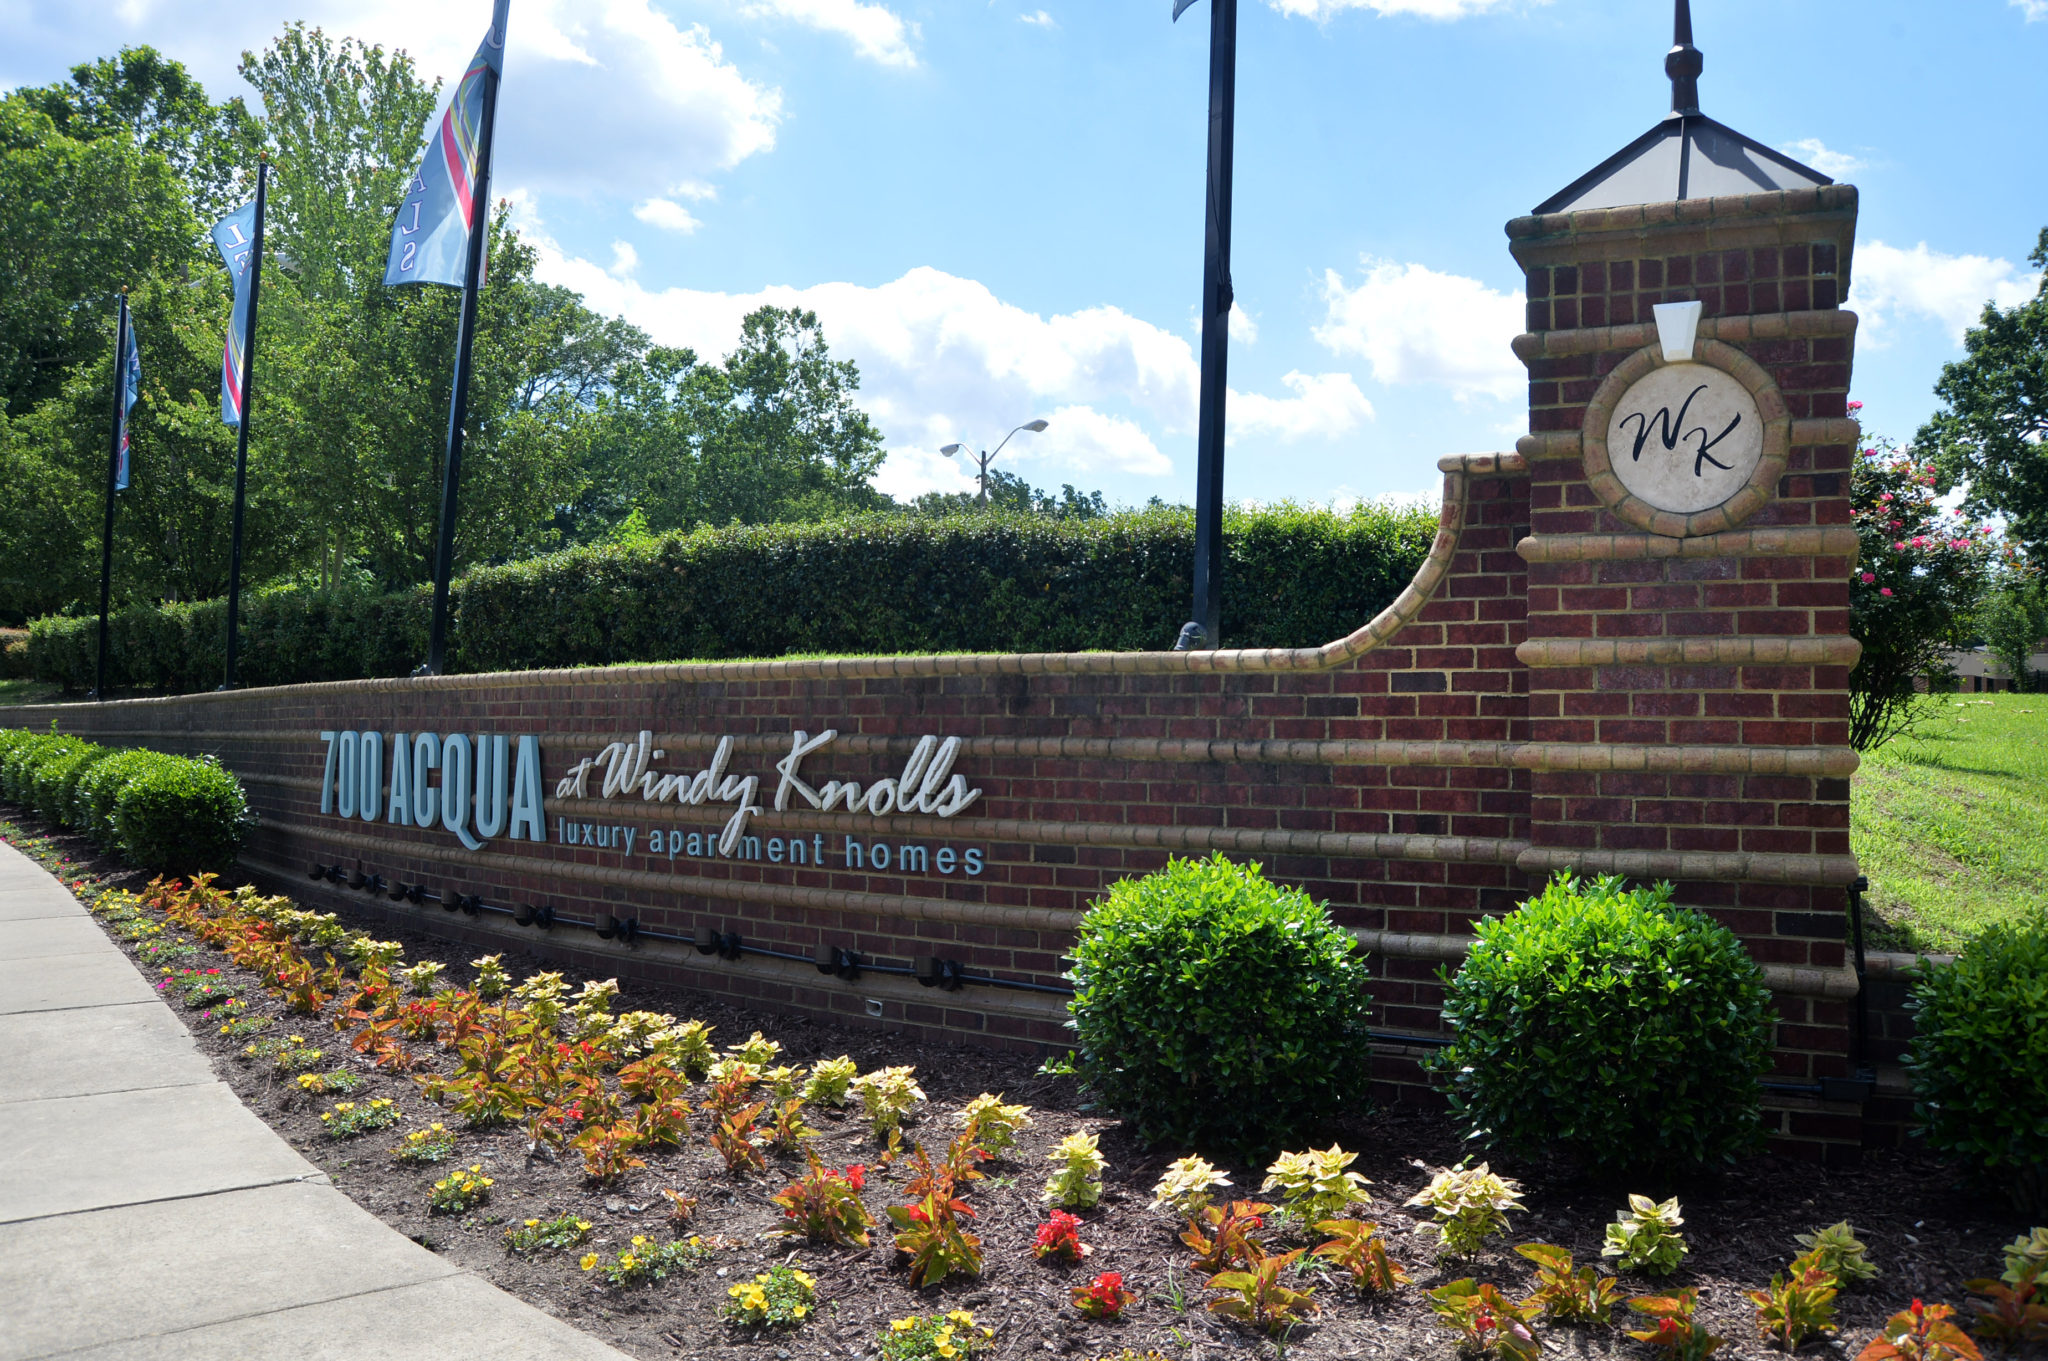 Entrance Feature at 700 Acqua in Newport News